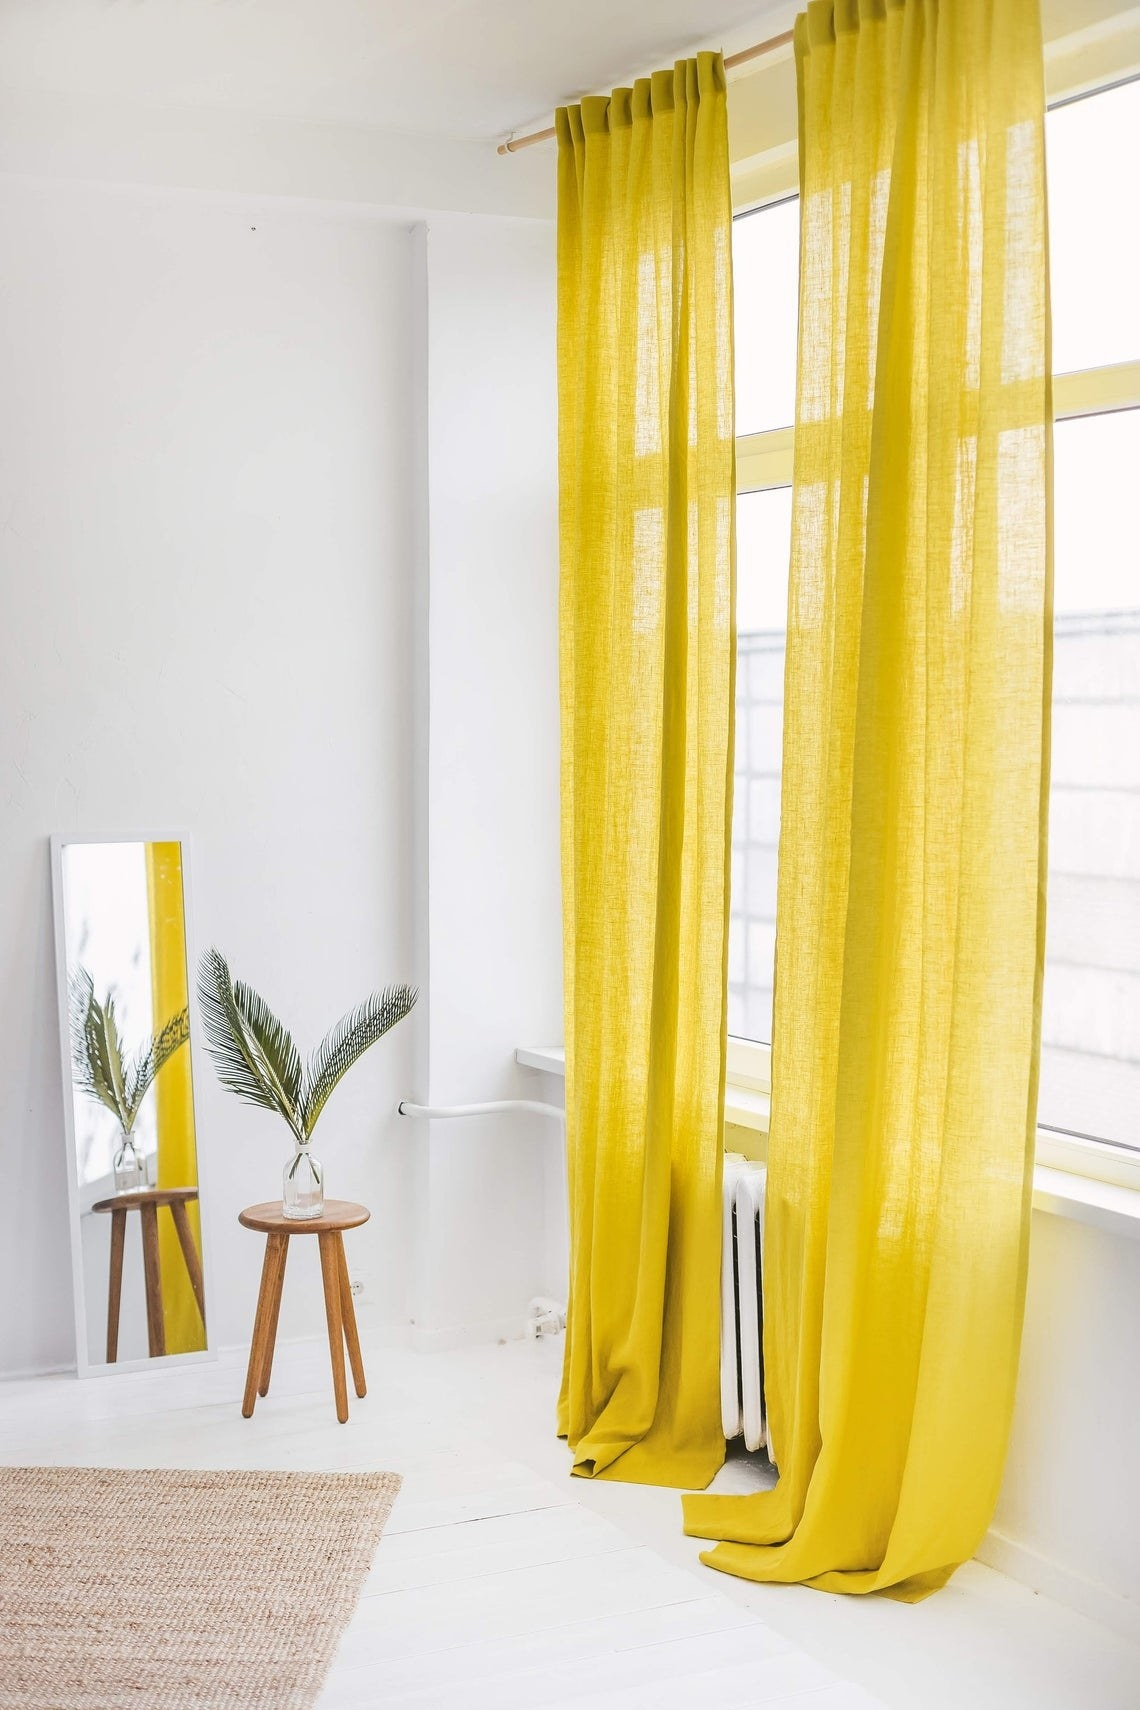 Long and light curtains in yellow